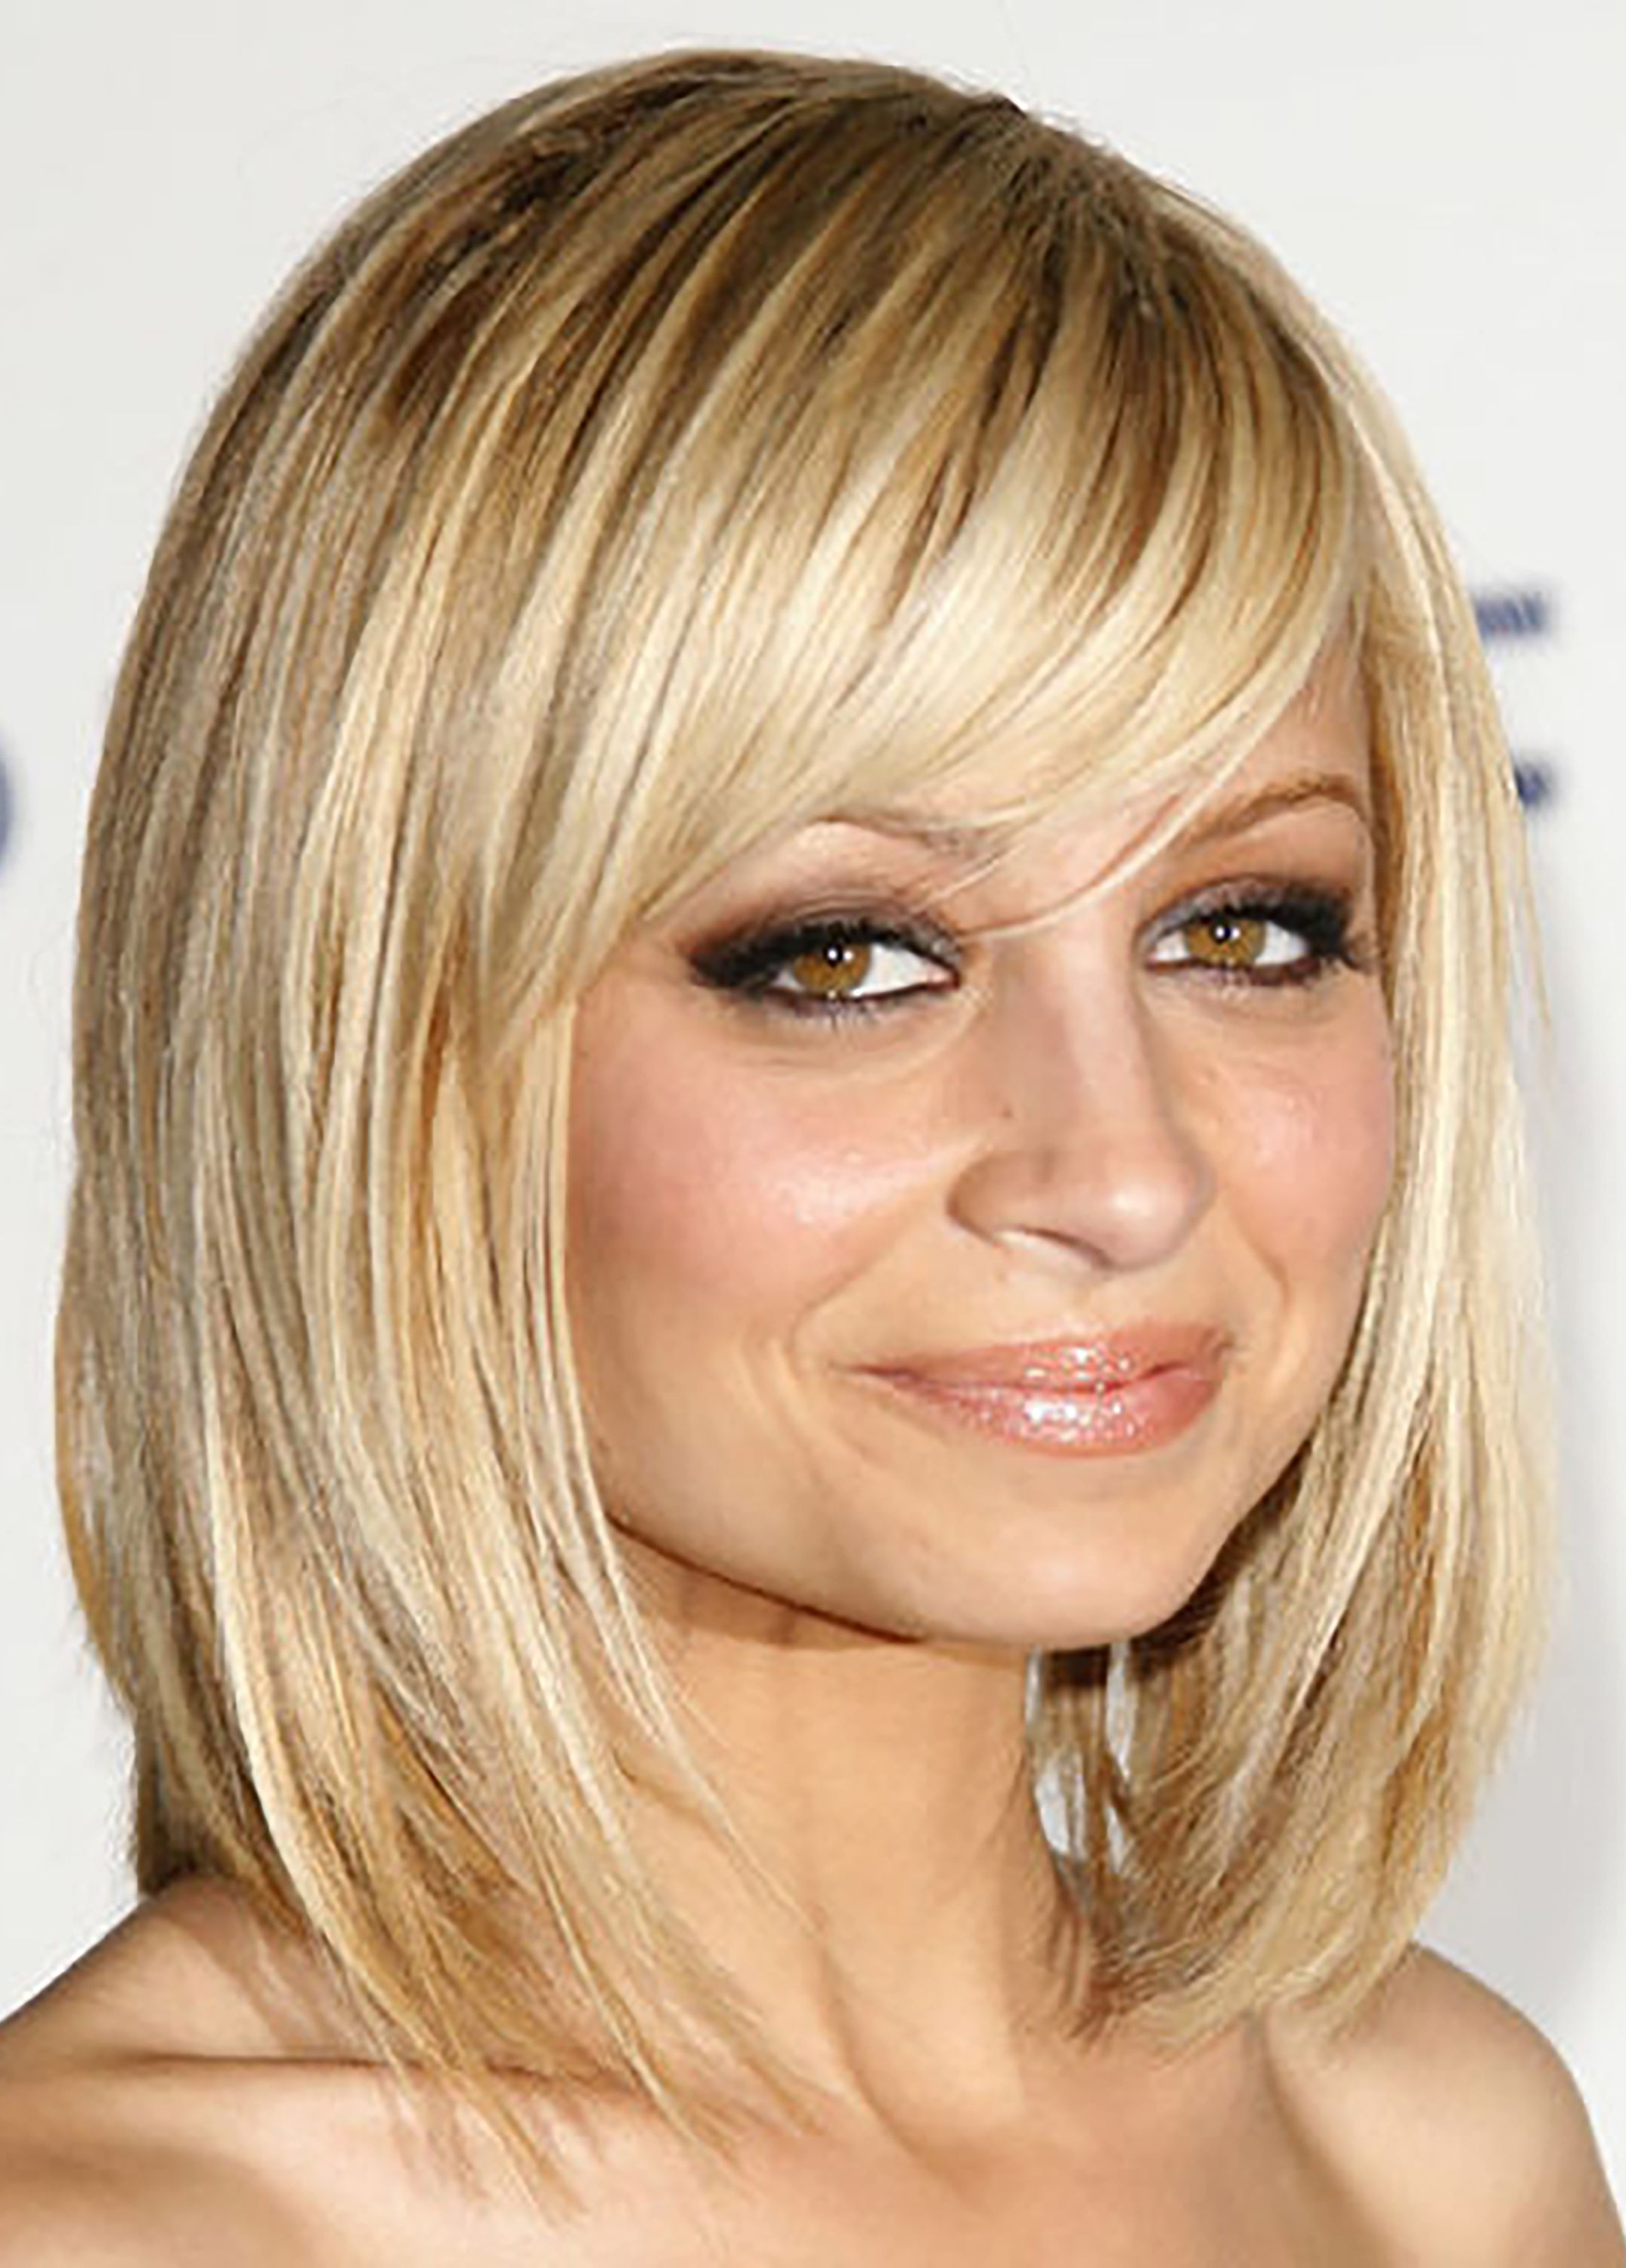 Widely Used Medium Hairstyles Covering Ears For 35 Cute Short Haircuts For Women 2019 – Easy Short Female Hairstyle (View 10 of 20)